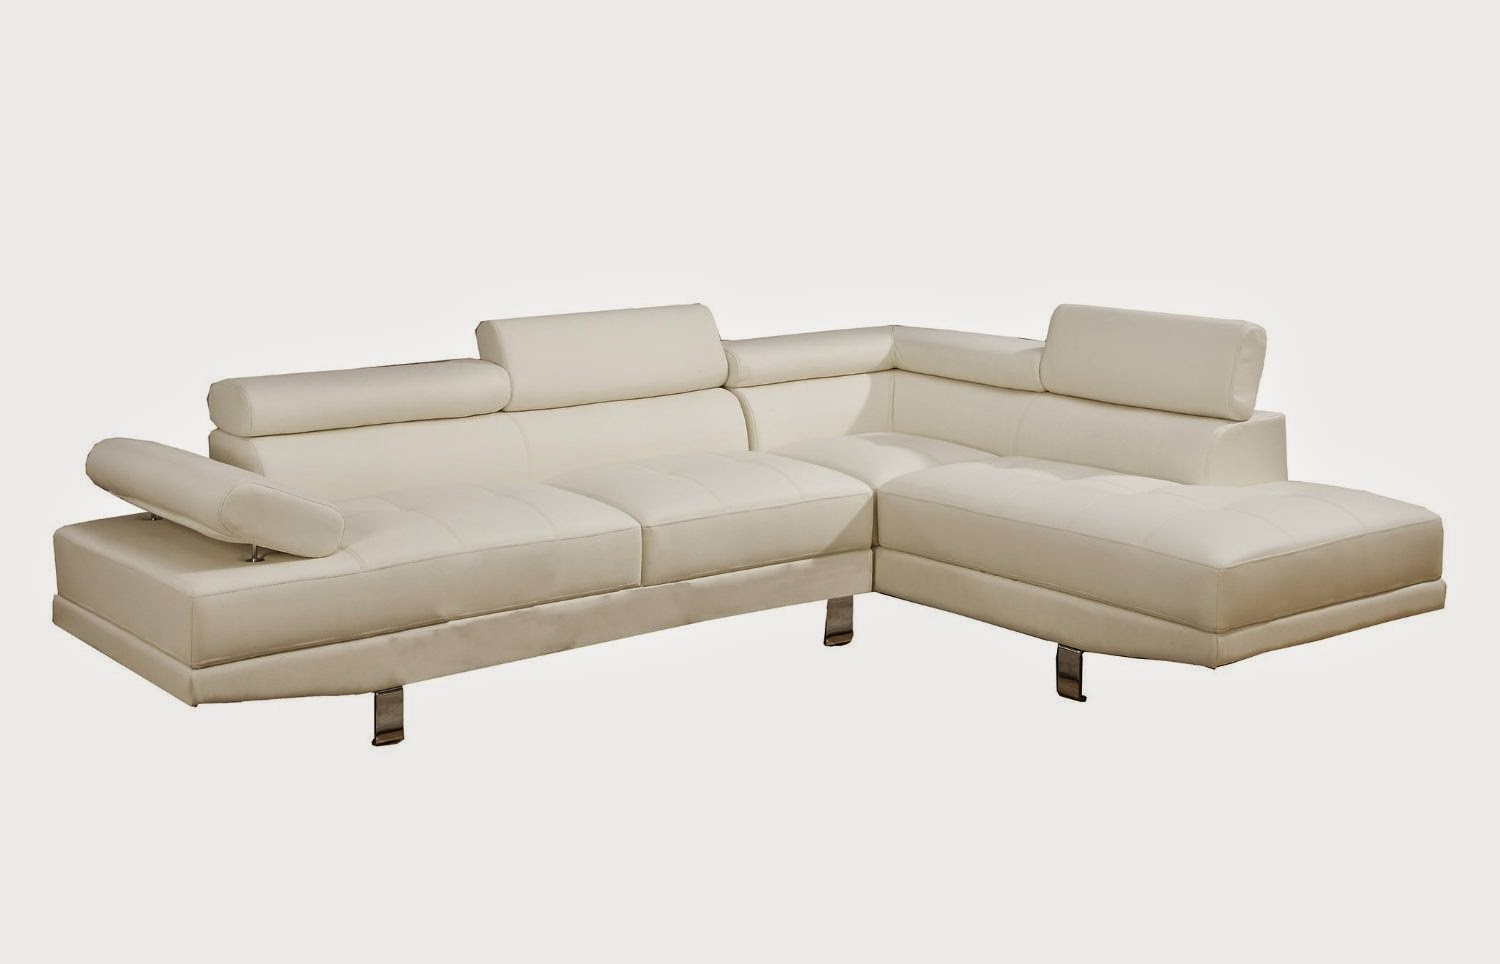 natuzzi sofa reviews lazy boy maverick sofas center leather